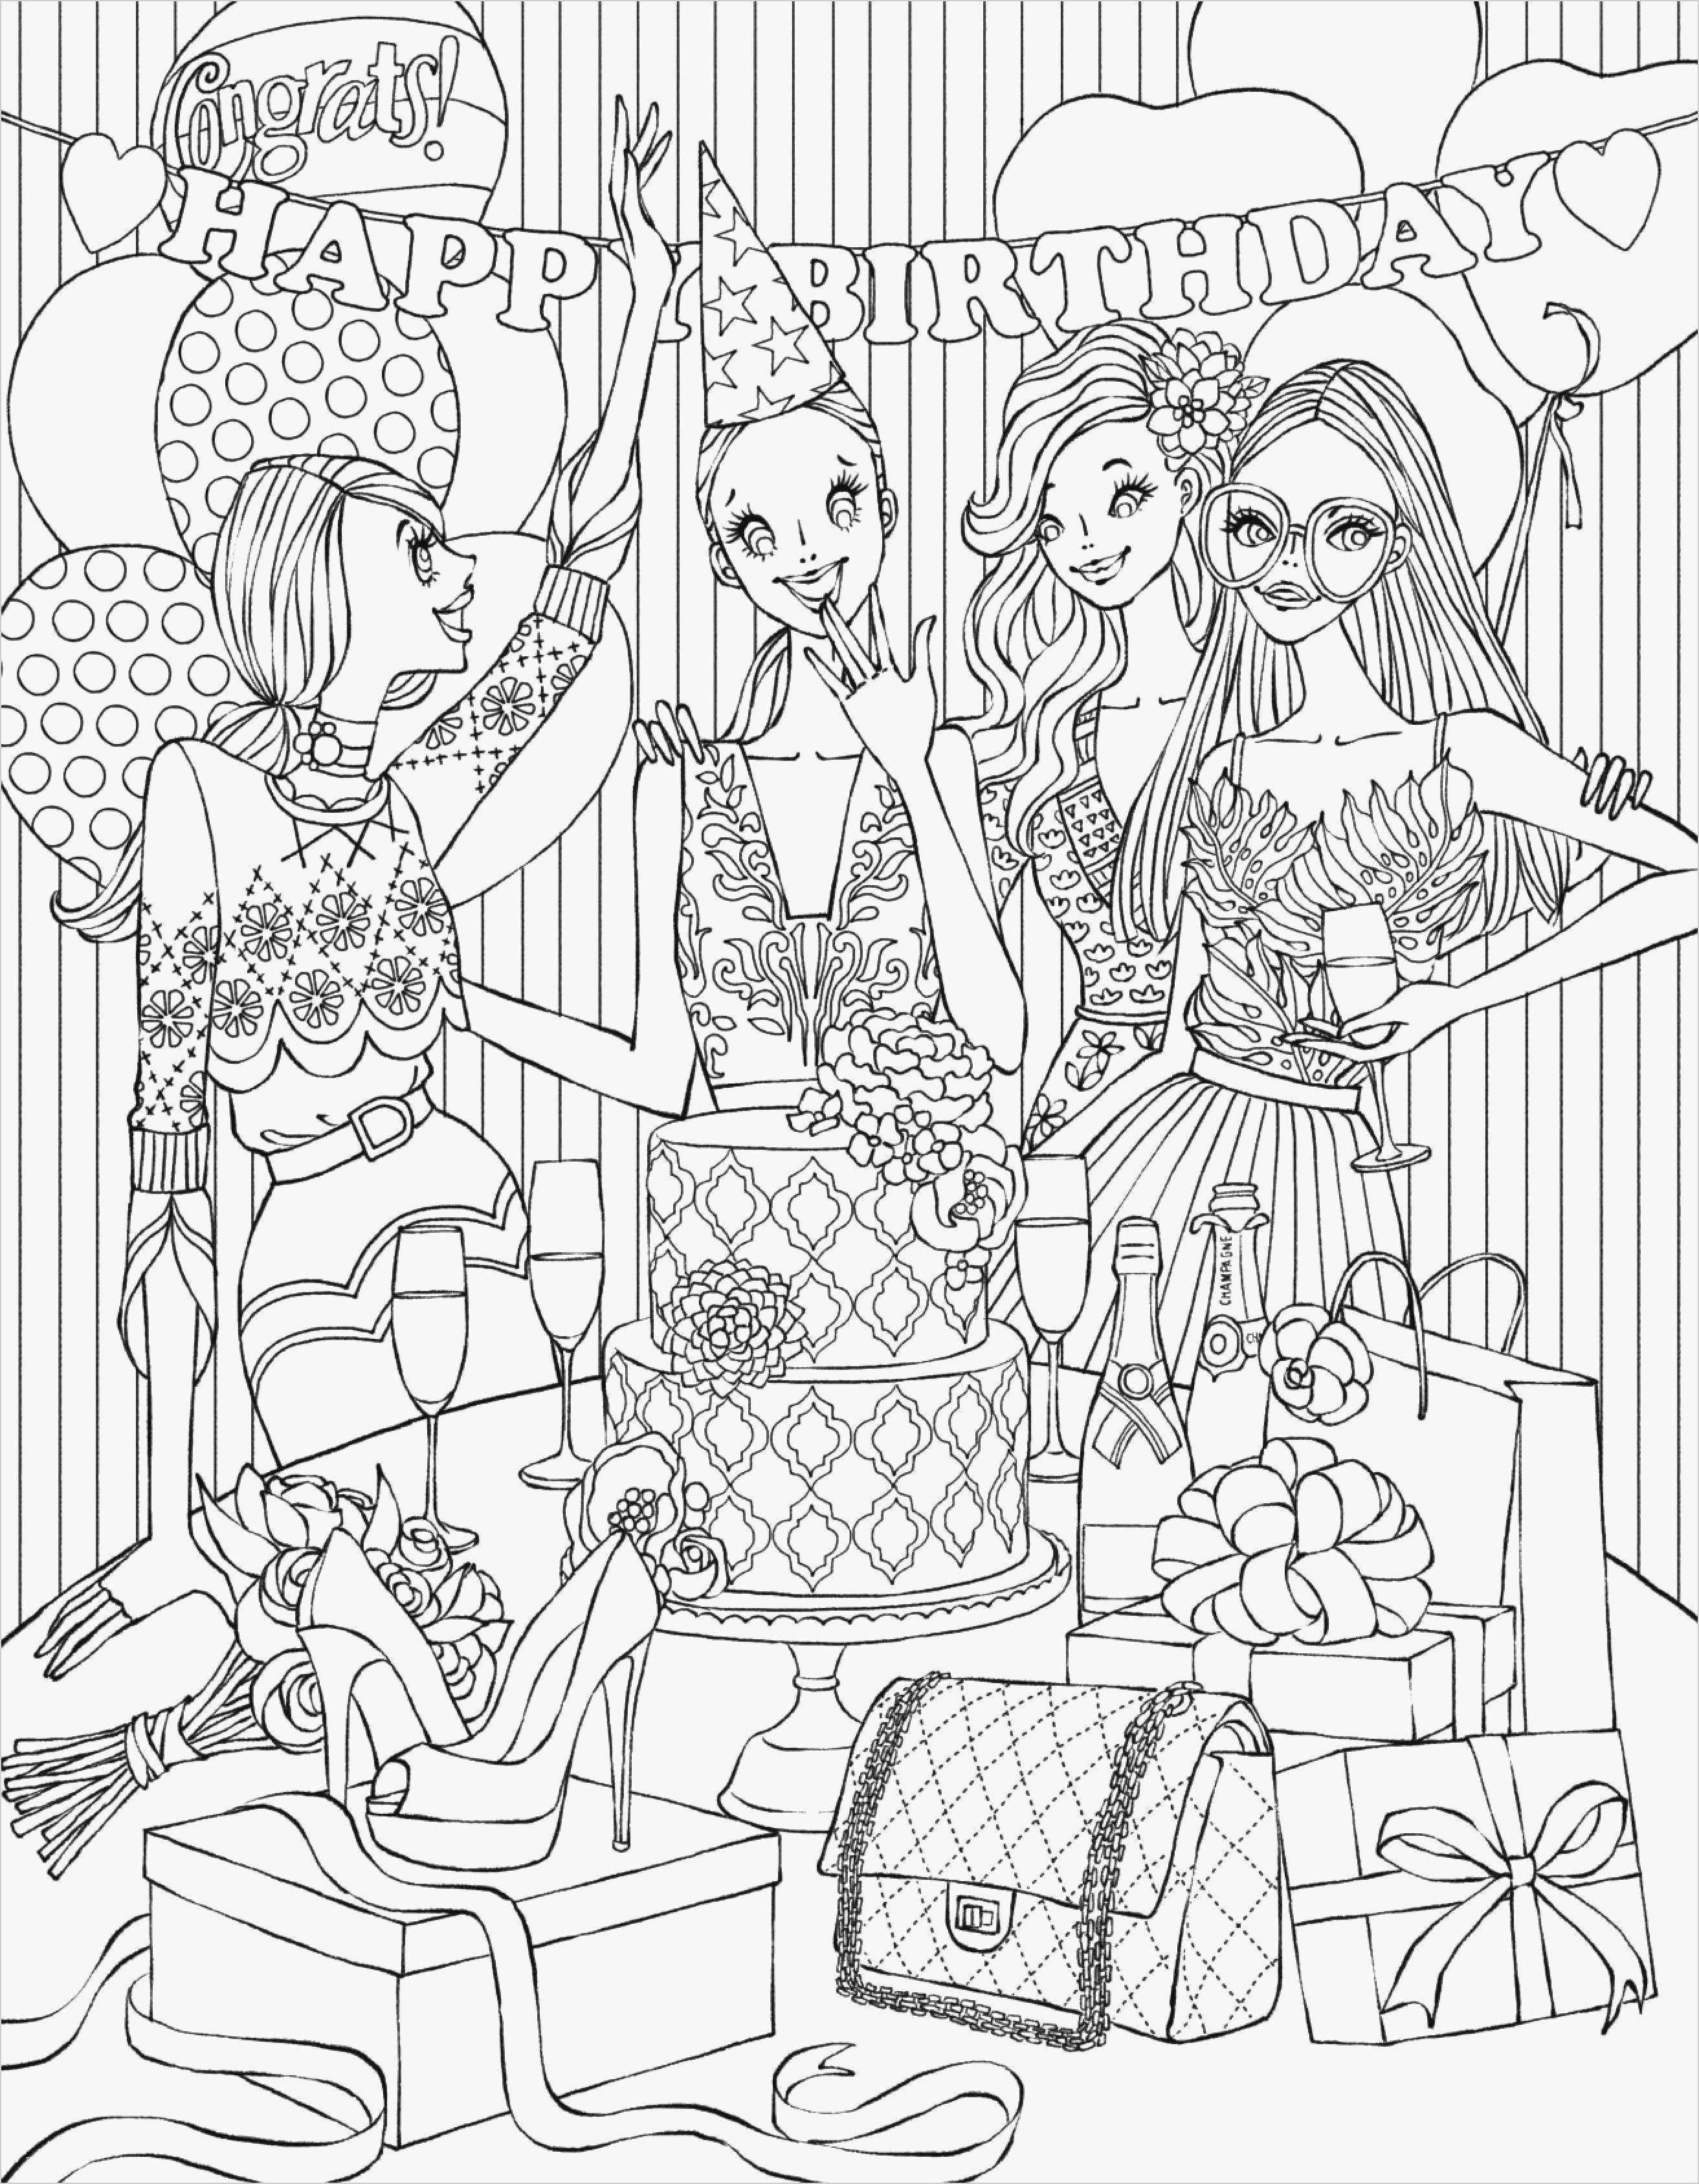 Candy Corn Coloring Page New Barbie Coloring